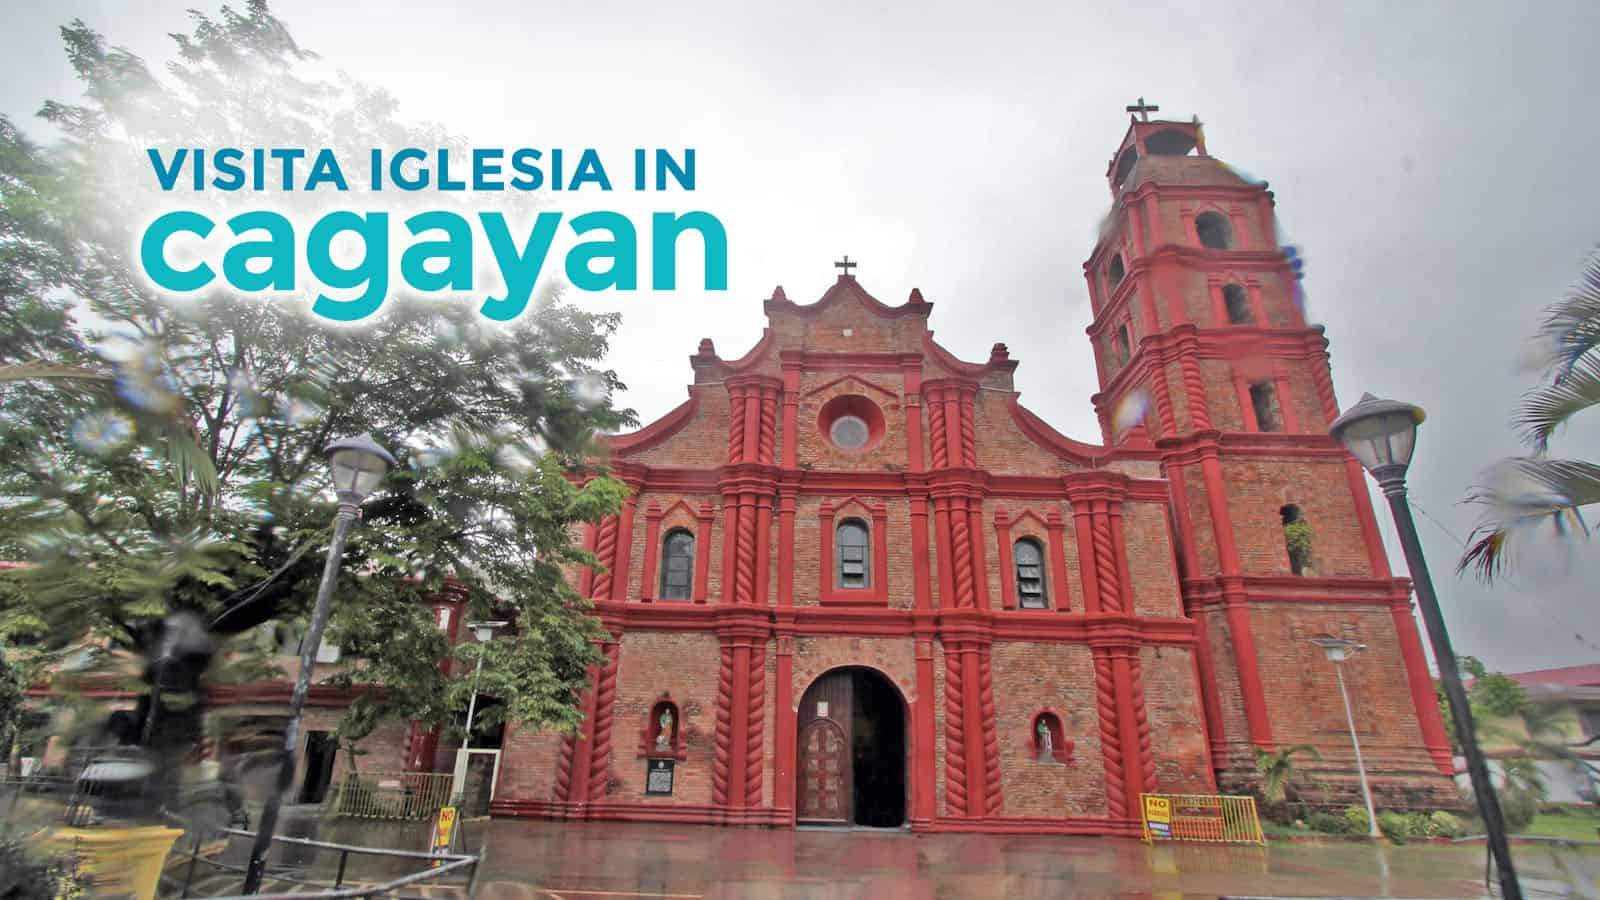 Cagayan: 7 Notable Churches for Your Visita Iglesia Itinerary